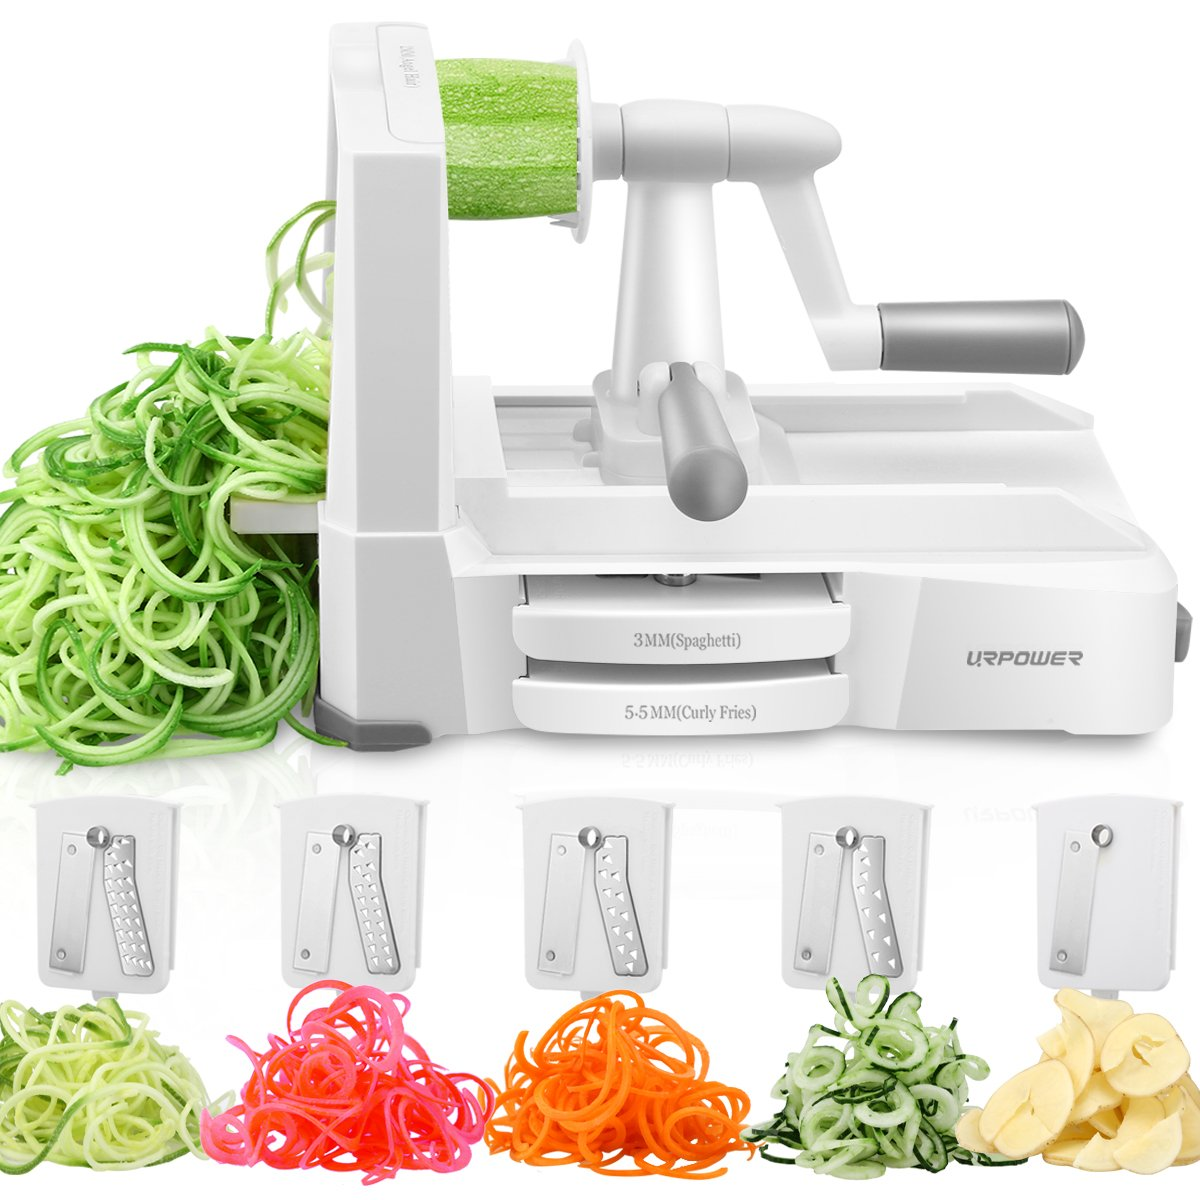 URPOWER Spiralizer Vegetable Slicer 5-Blade Vegetable Spiralizer, Strongest & Heaviest Duty Zoodle Maker, Food Processor, Veggie Pasta, Spaghetti Maker & Julienne Cutter for Low Carb/Paleo/Gluten-Free B435-A